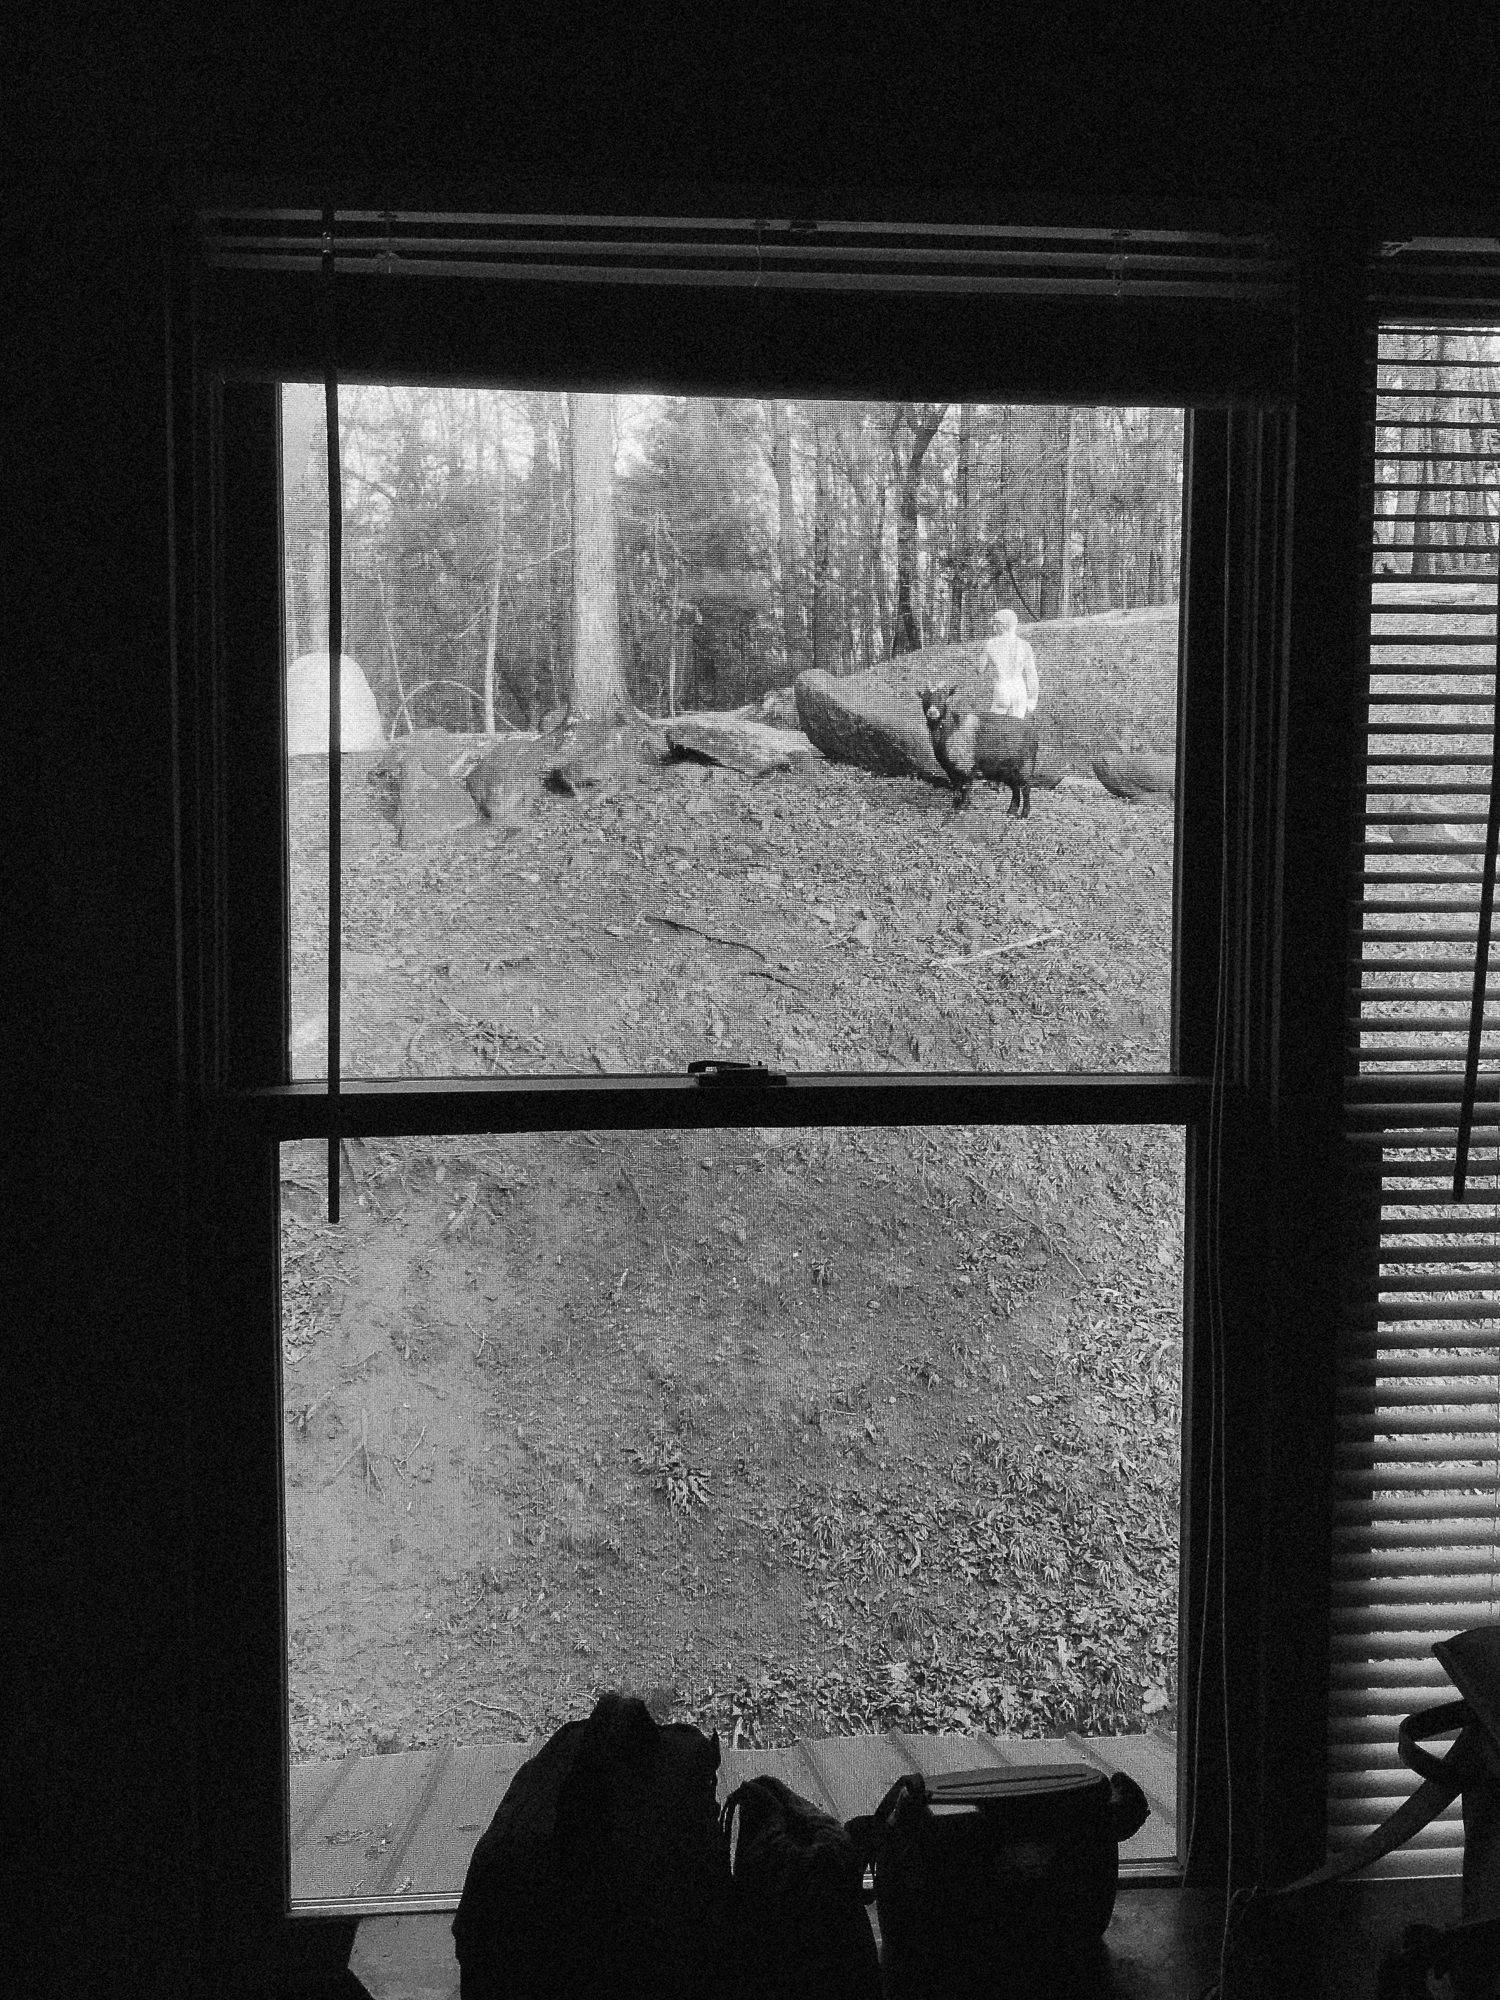 When we woke up the first morning, we opened the window to see the goat staring in at us (probably waiting for treats).